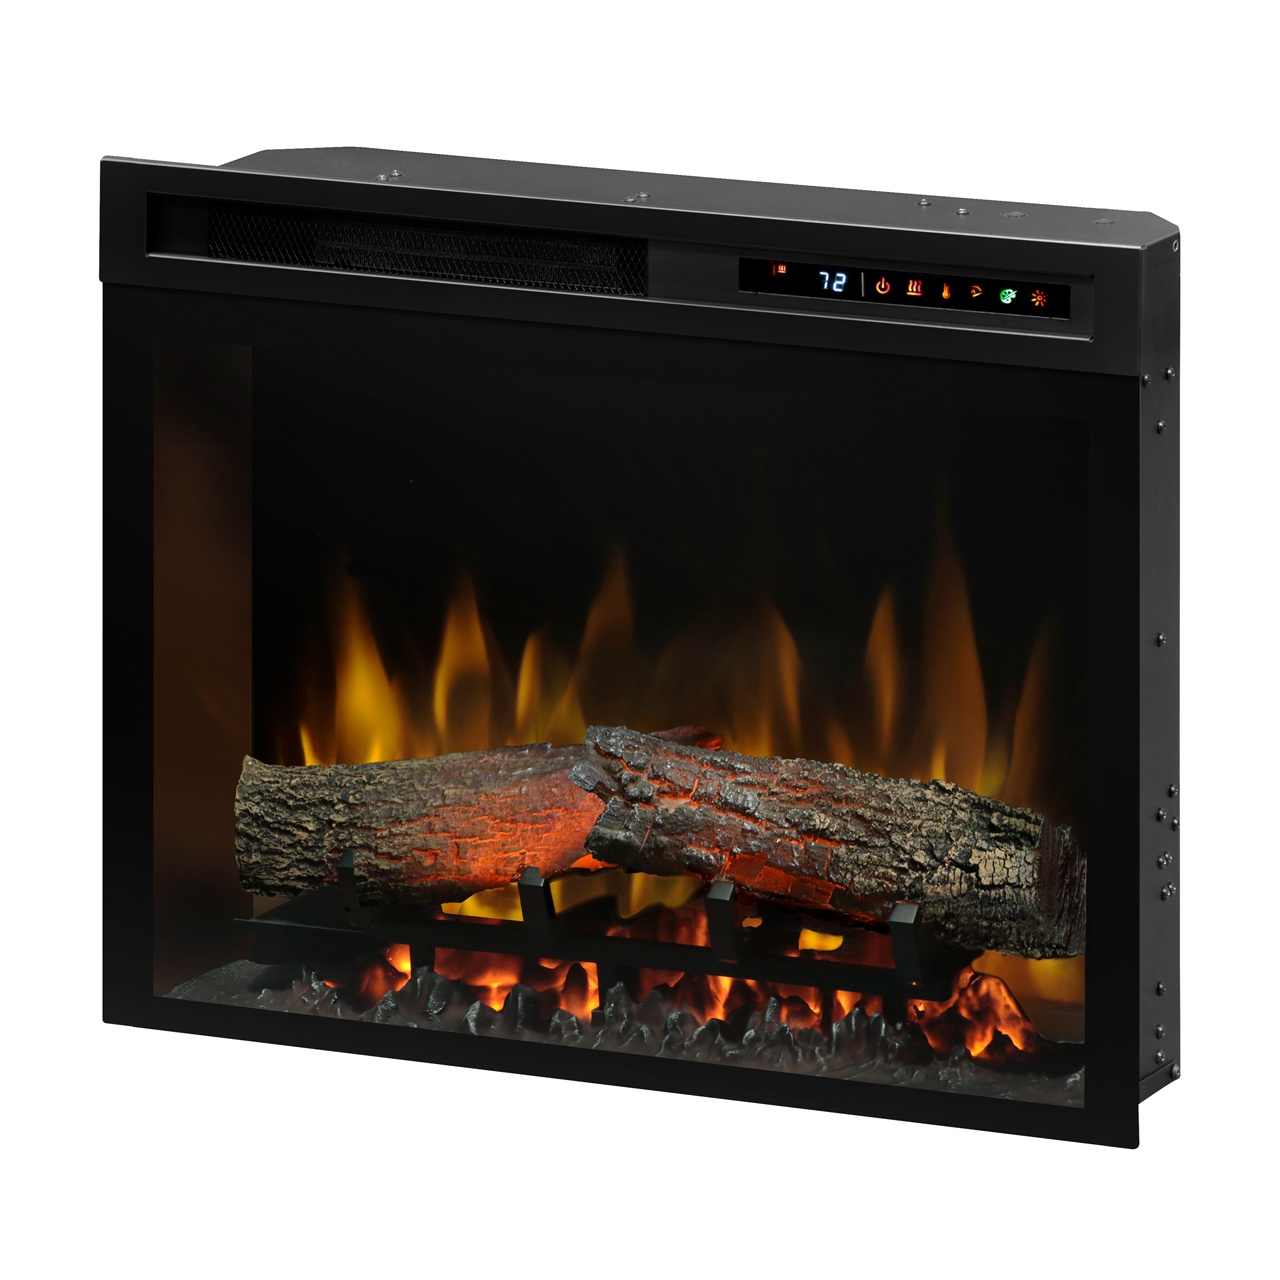 Dimplex 23 Quot Multi Fire Xhd23l Plug In Electric Fireplace